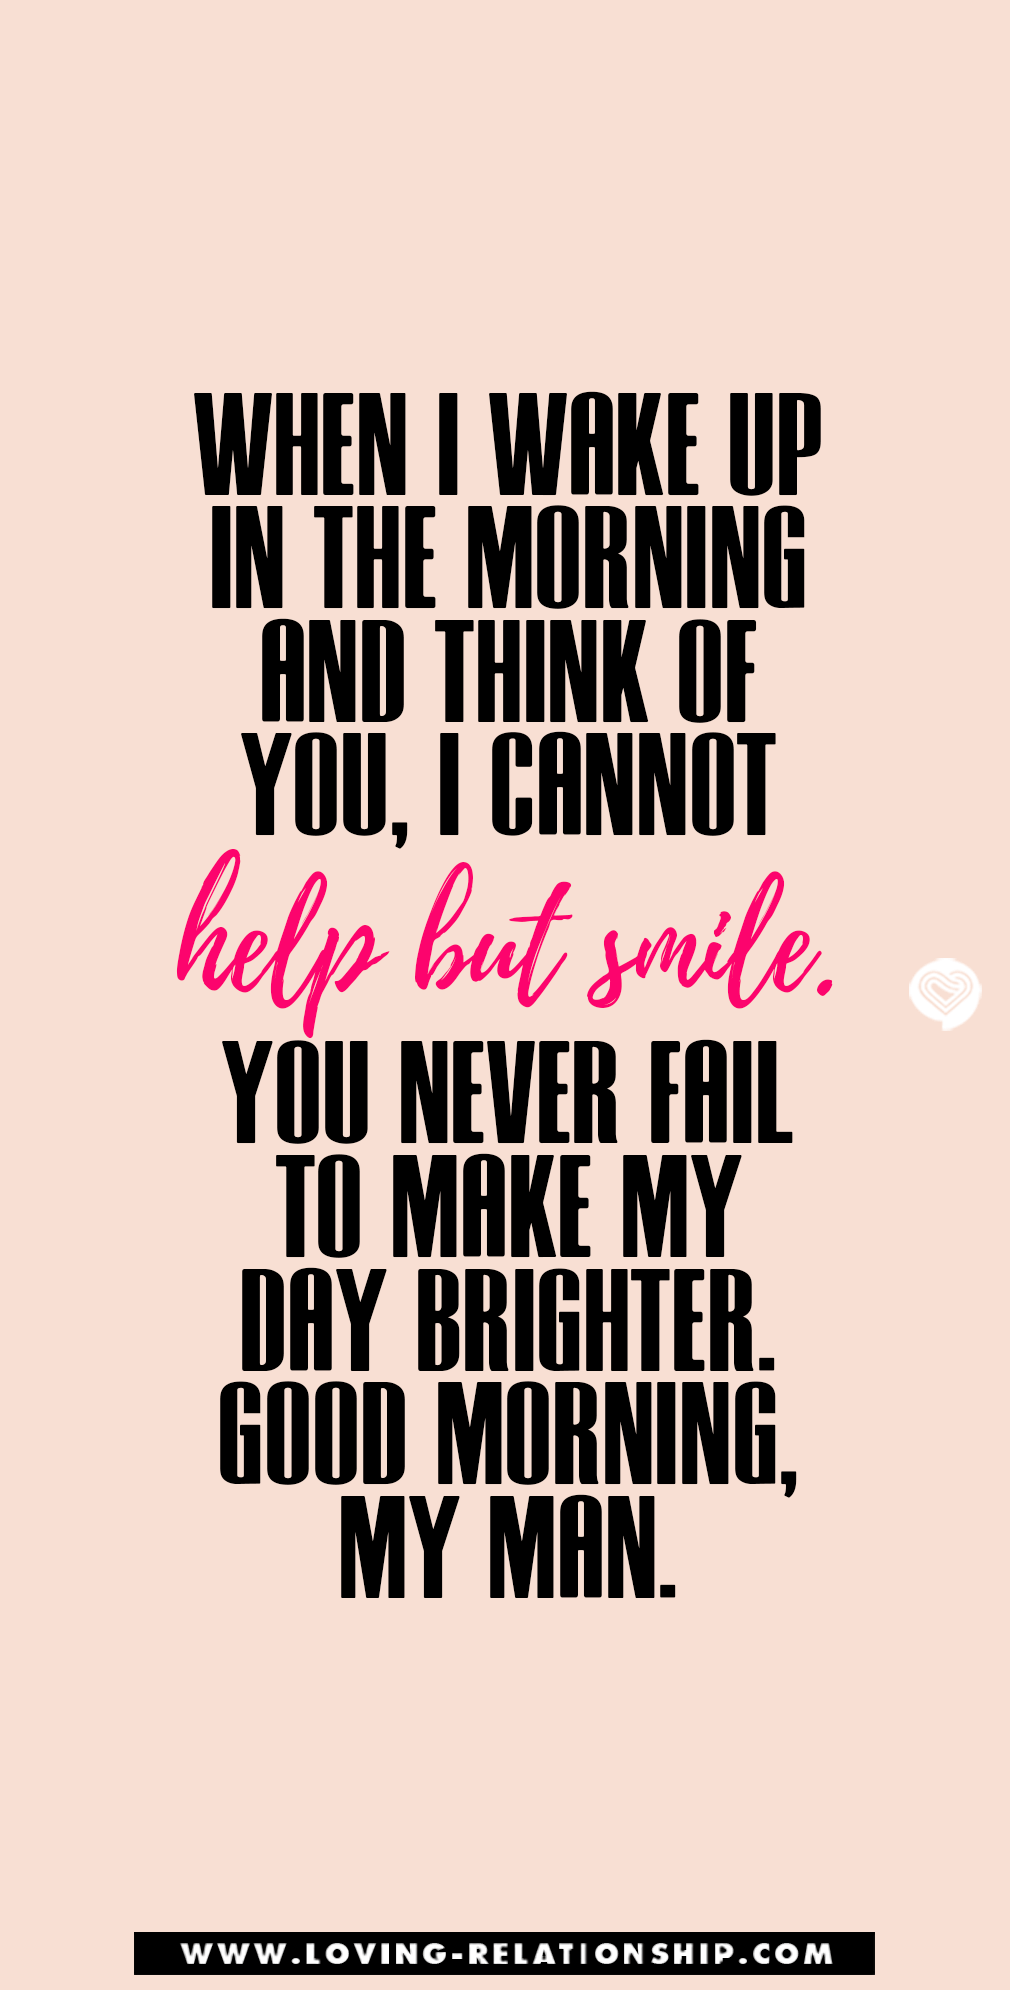 Good Morning Messages For Him (Boyfriend / Husband) With Images | Good Morning Texts | Texts for Him